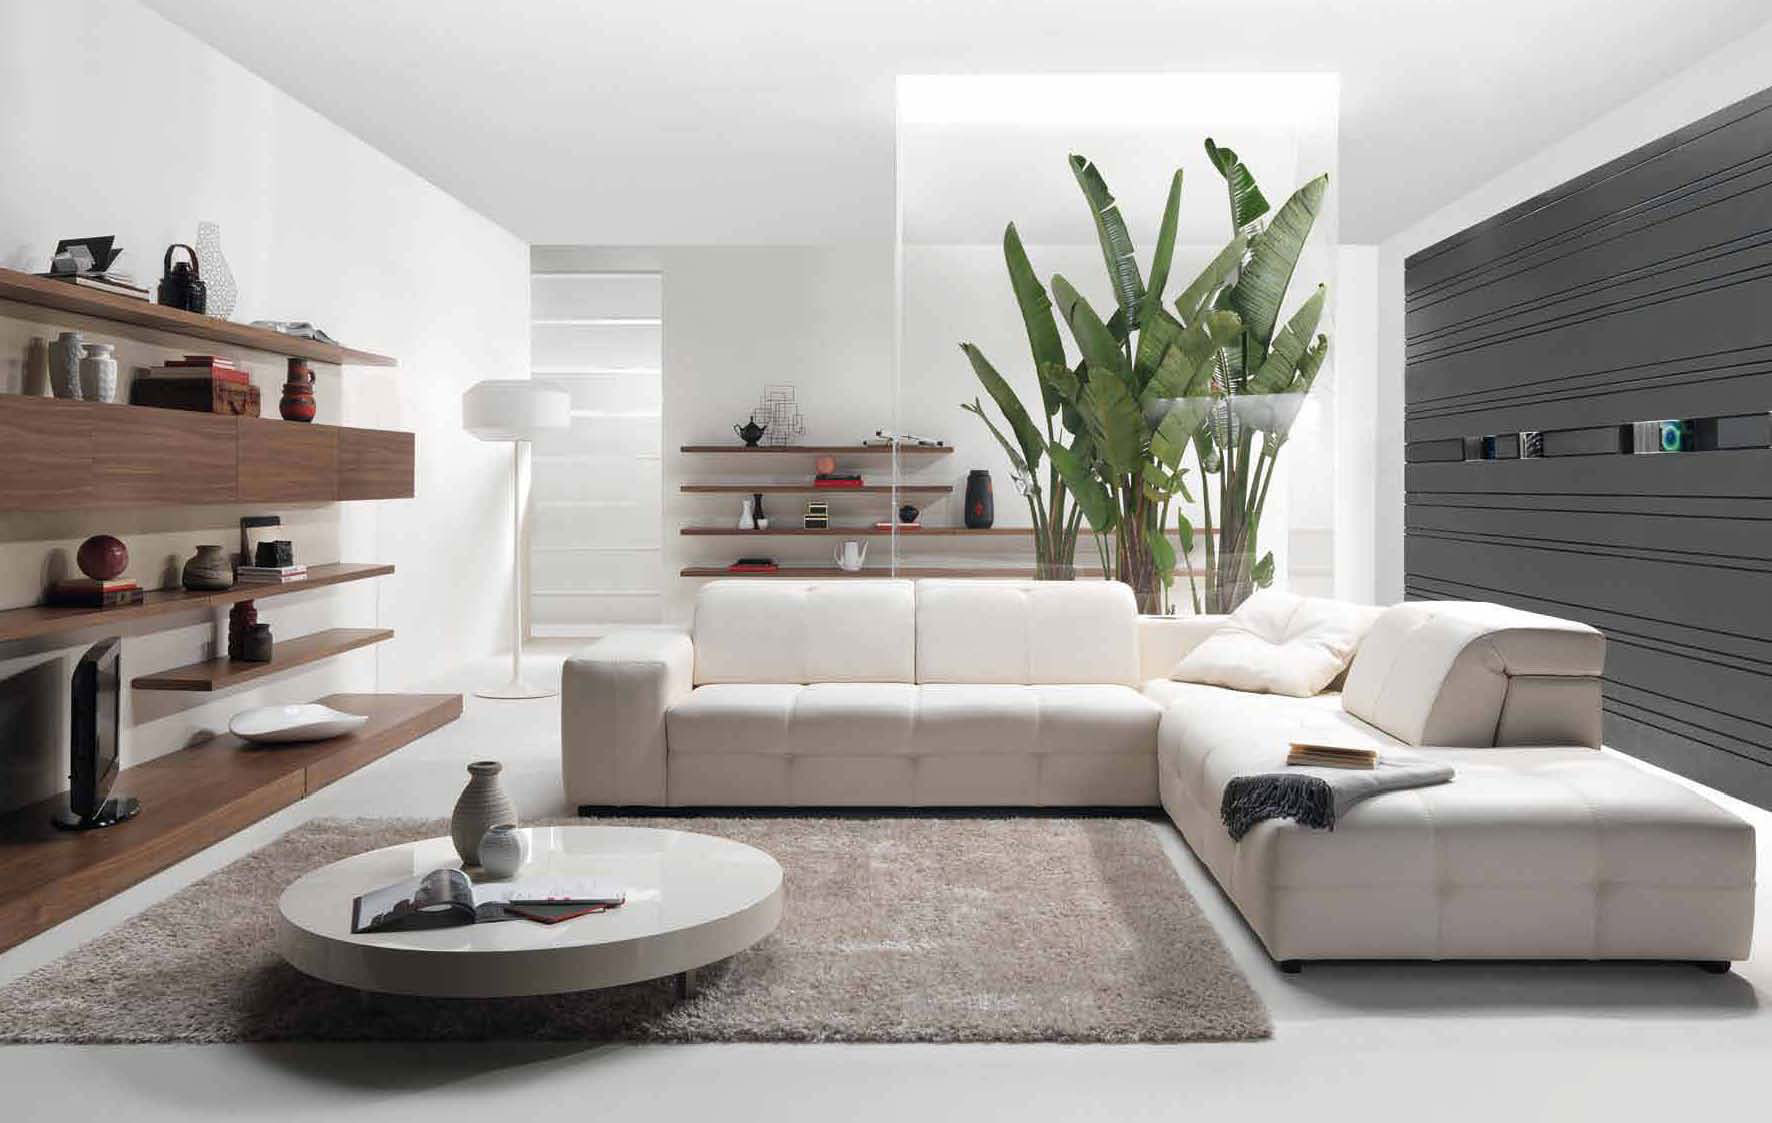 25 best modern living room designs - Living room ideas decorating pictures ...